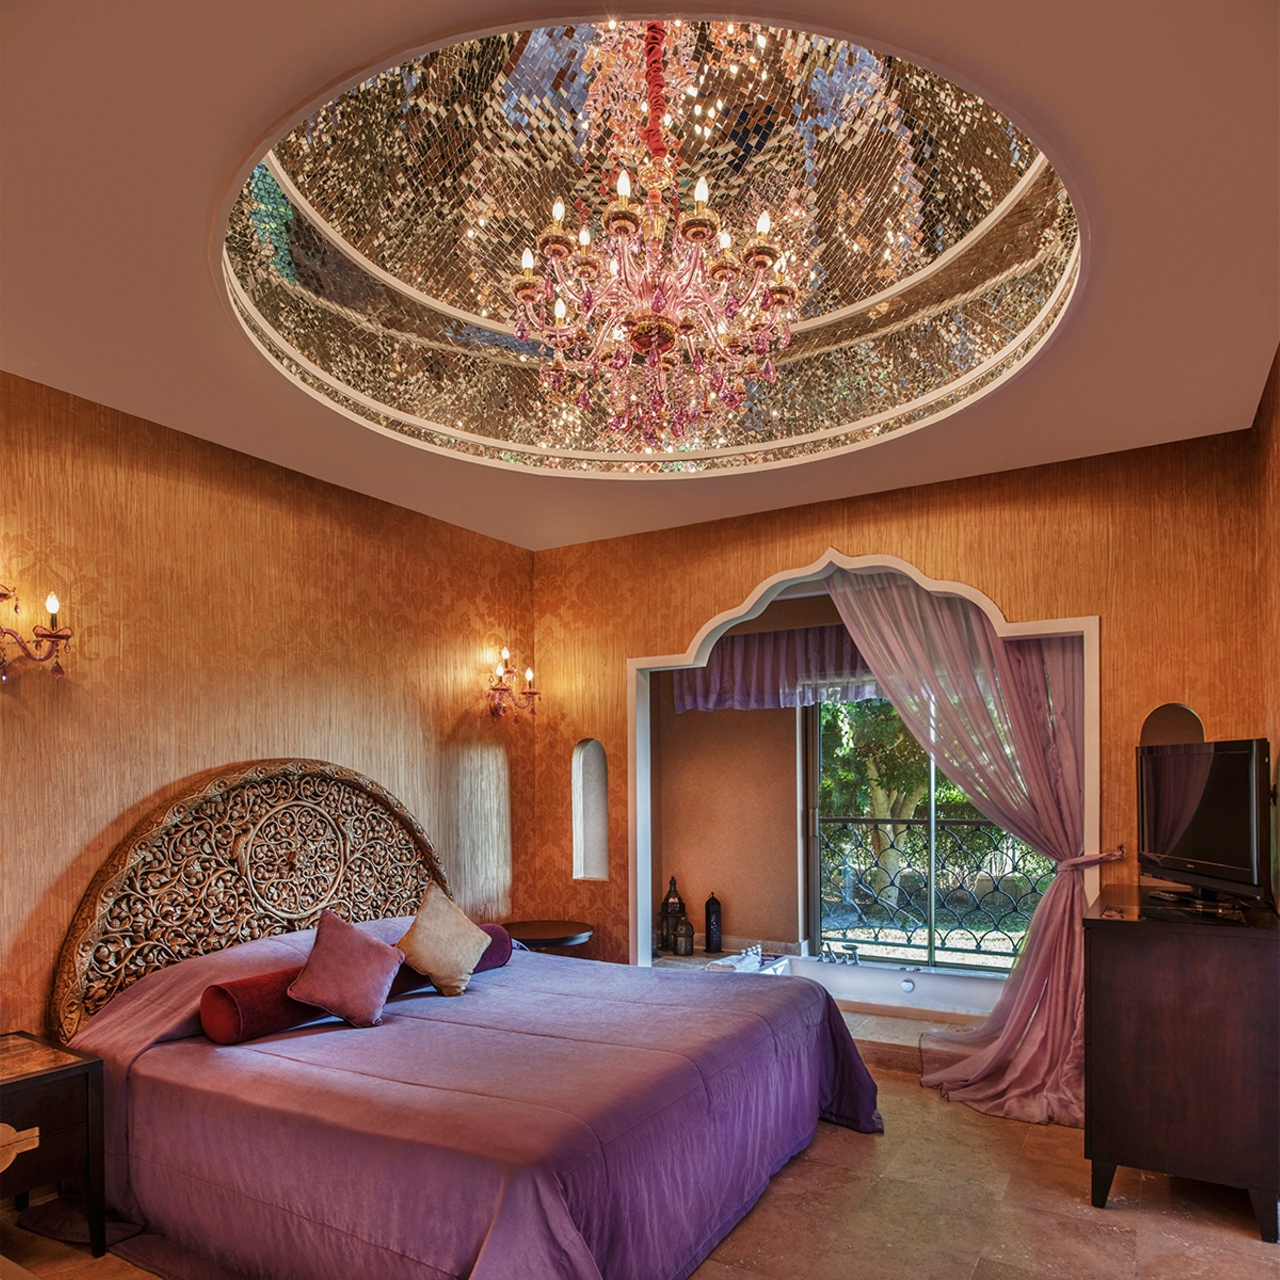 Spice Hotel Spa Belek Antalya Ili At Hrs With Free Services